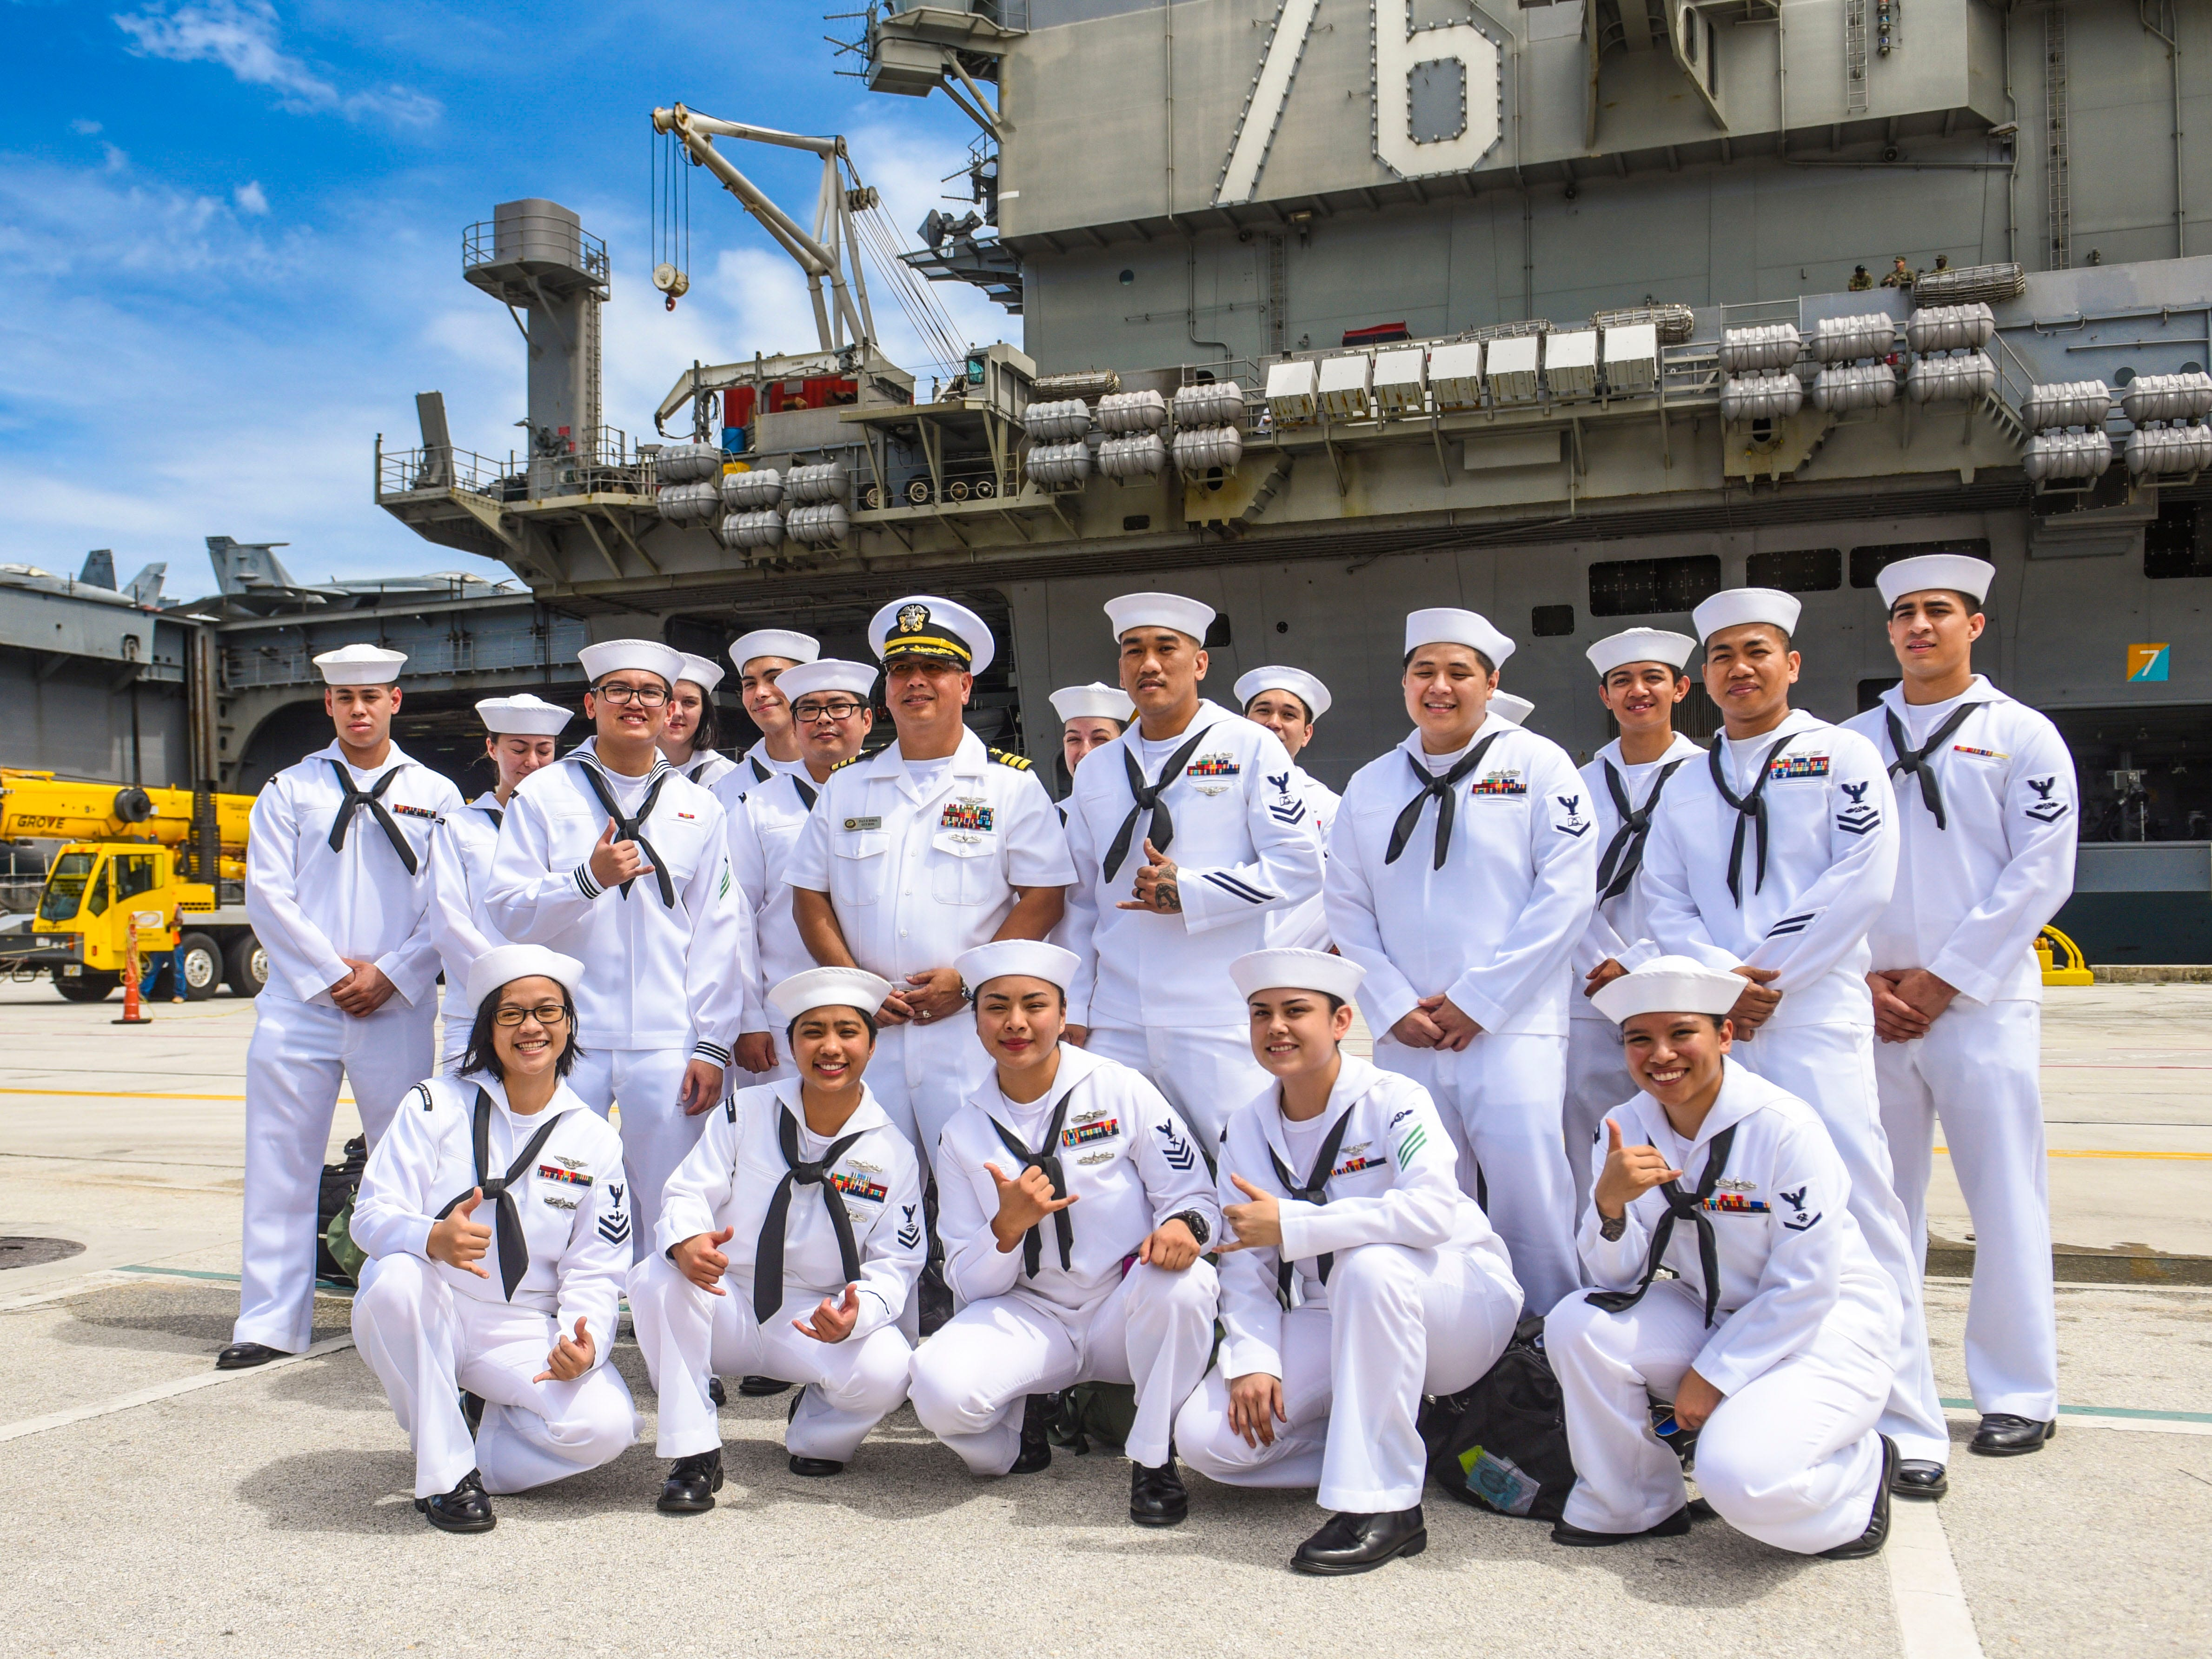 Nineteen sailors with Guam ties, serving aboard the Nimitz-class nuclear-powered aircraft carrier, USS Ronald Reagan, gather for a group photo after the ship docked at the Kilo Wharf on Naval Base Guam in Sumay on Monday, Sept. 24, 2018. The vessel and its crew of nearly 5,000 sailors, normally forward-deployed at Yokosuka, Japan, is paying a port visit to the island.